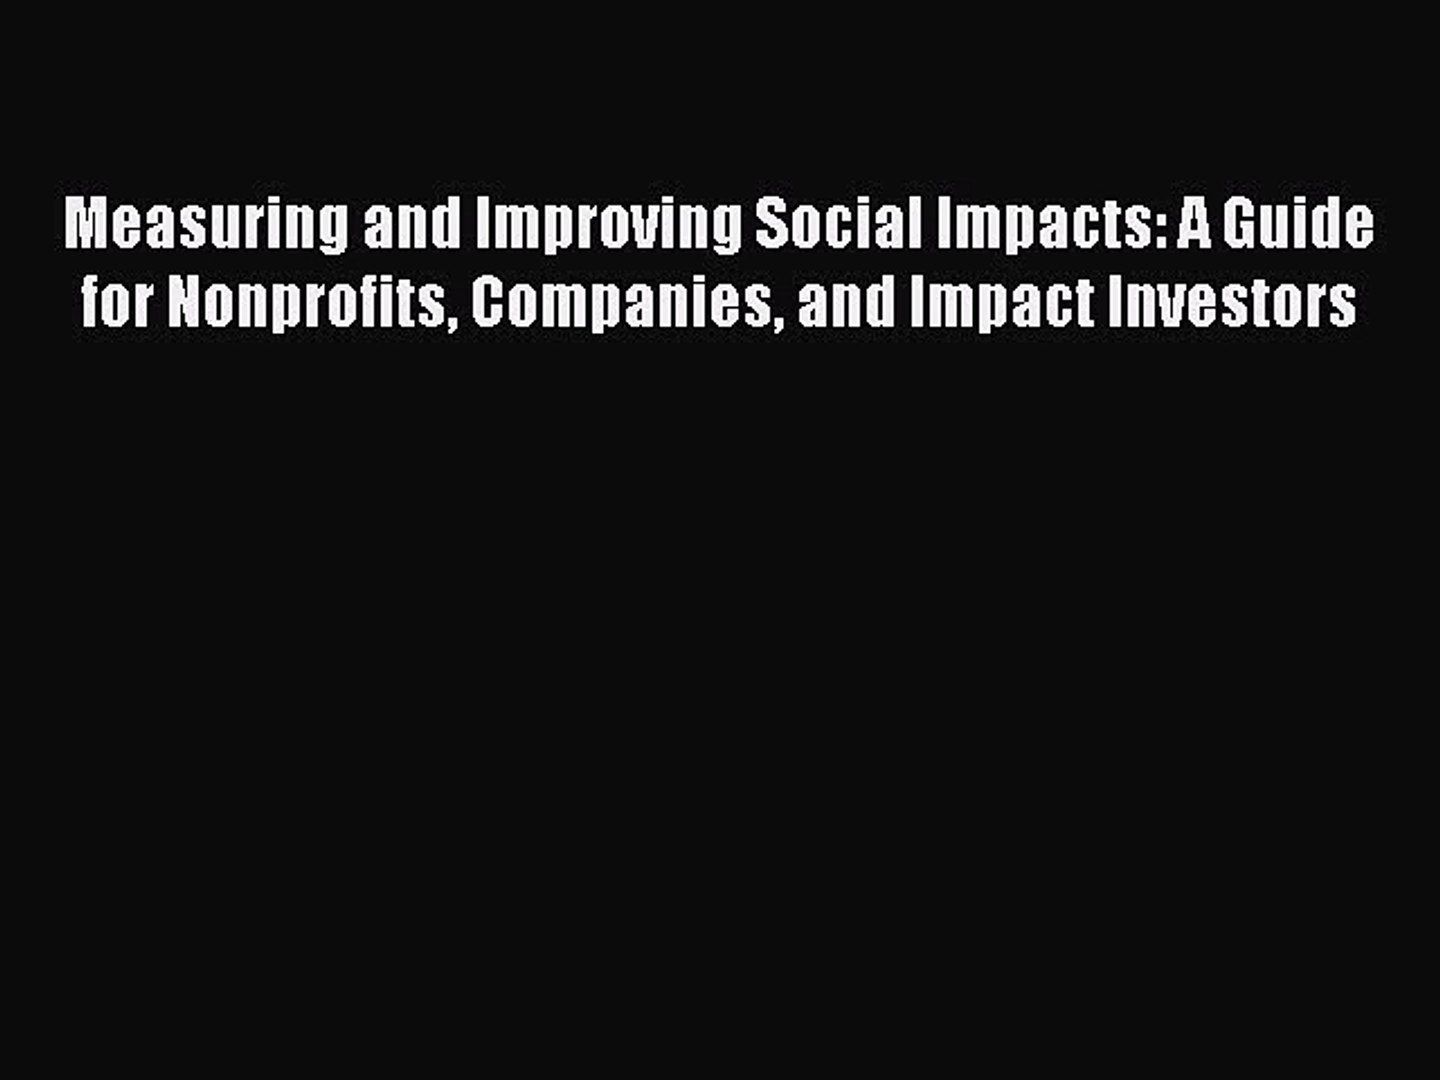 and Impact Investors A Guide for Nonprofits Measuring and Improving Social Impacts Companies